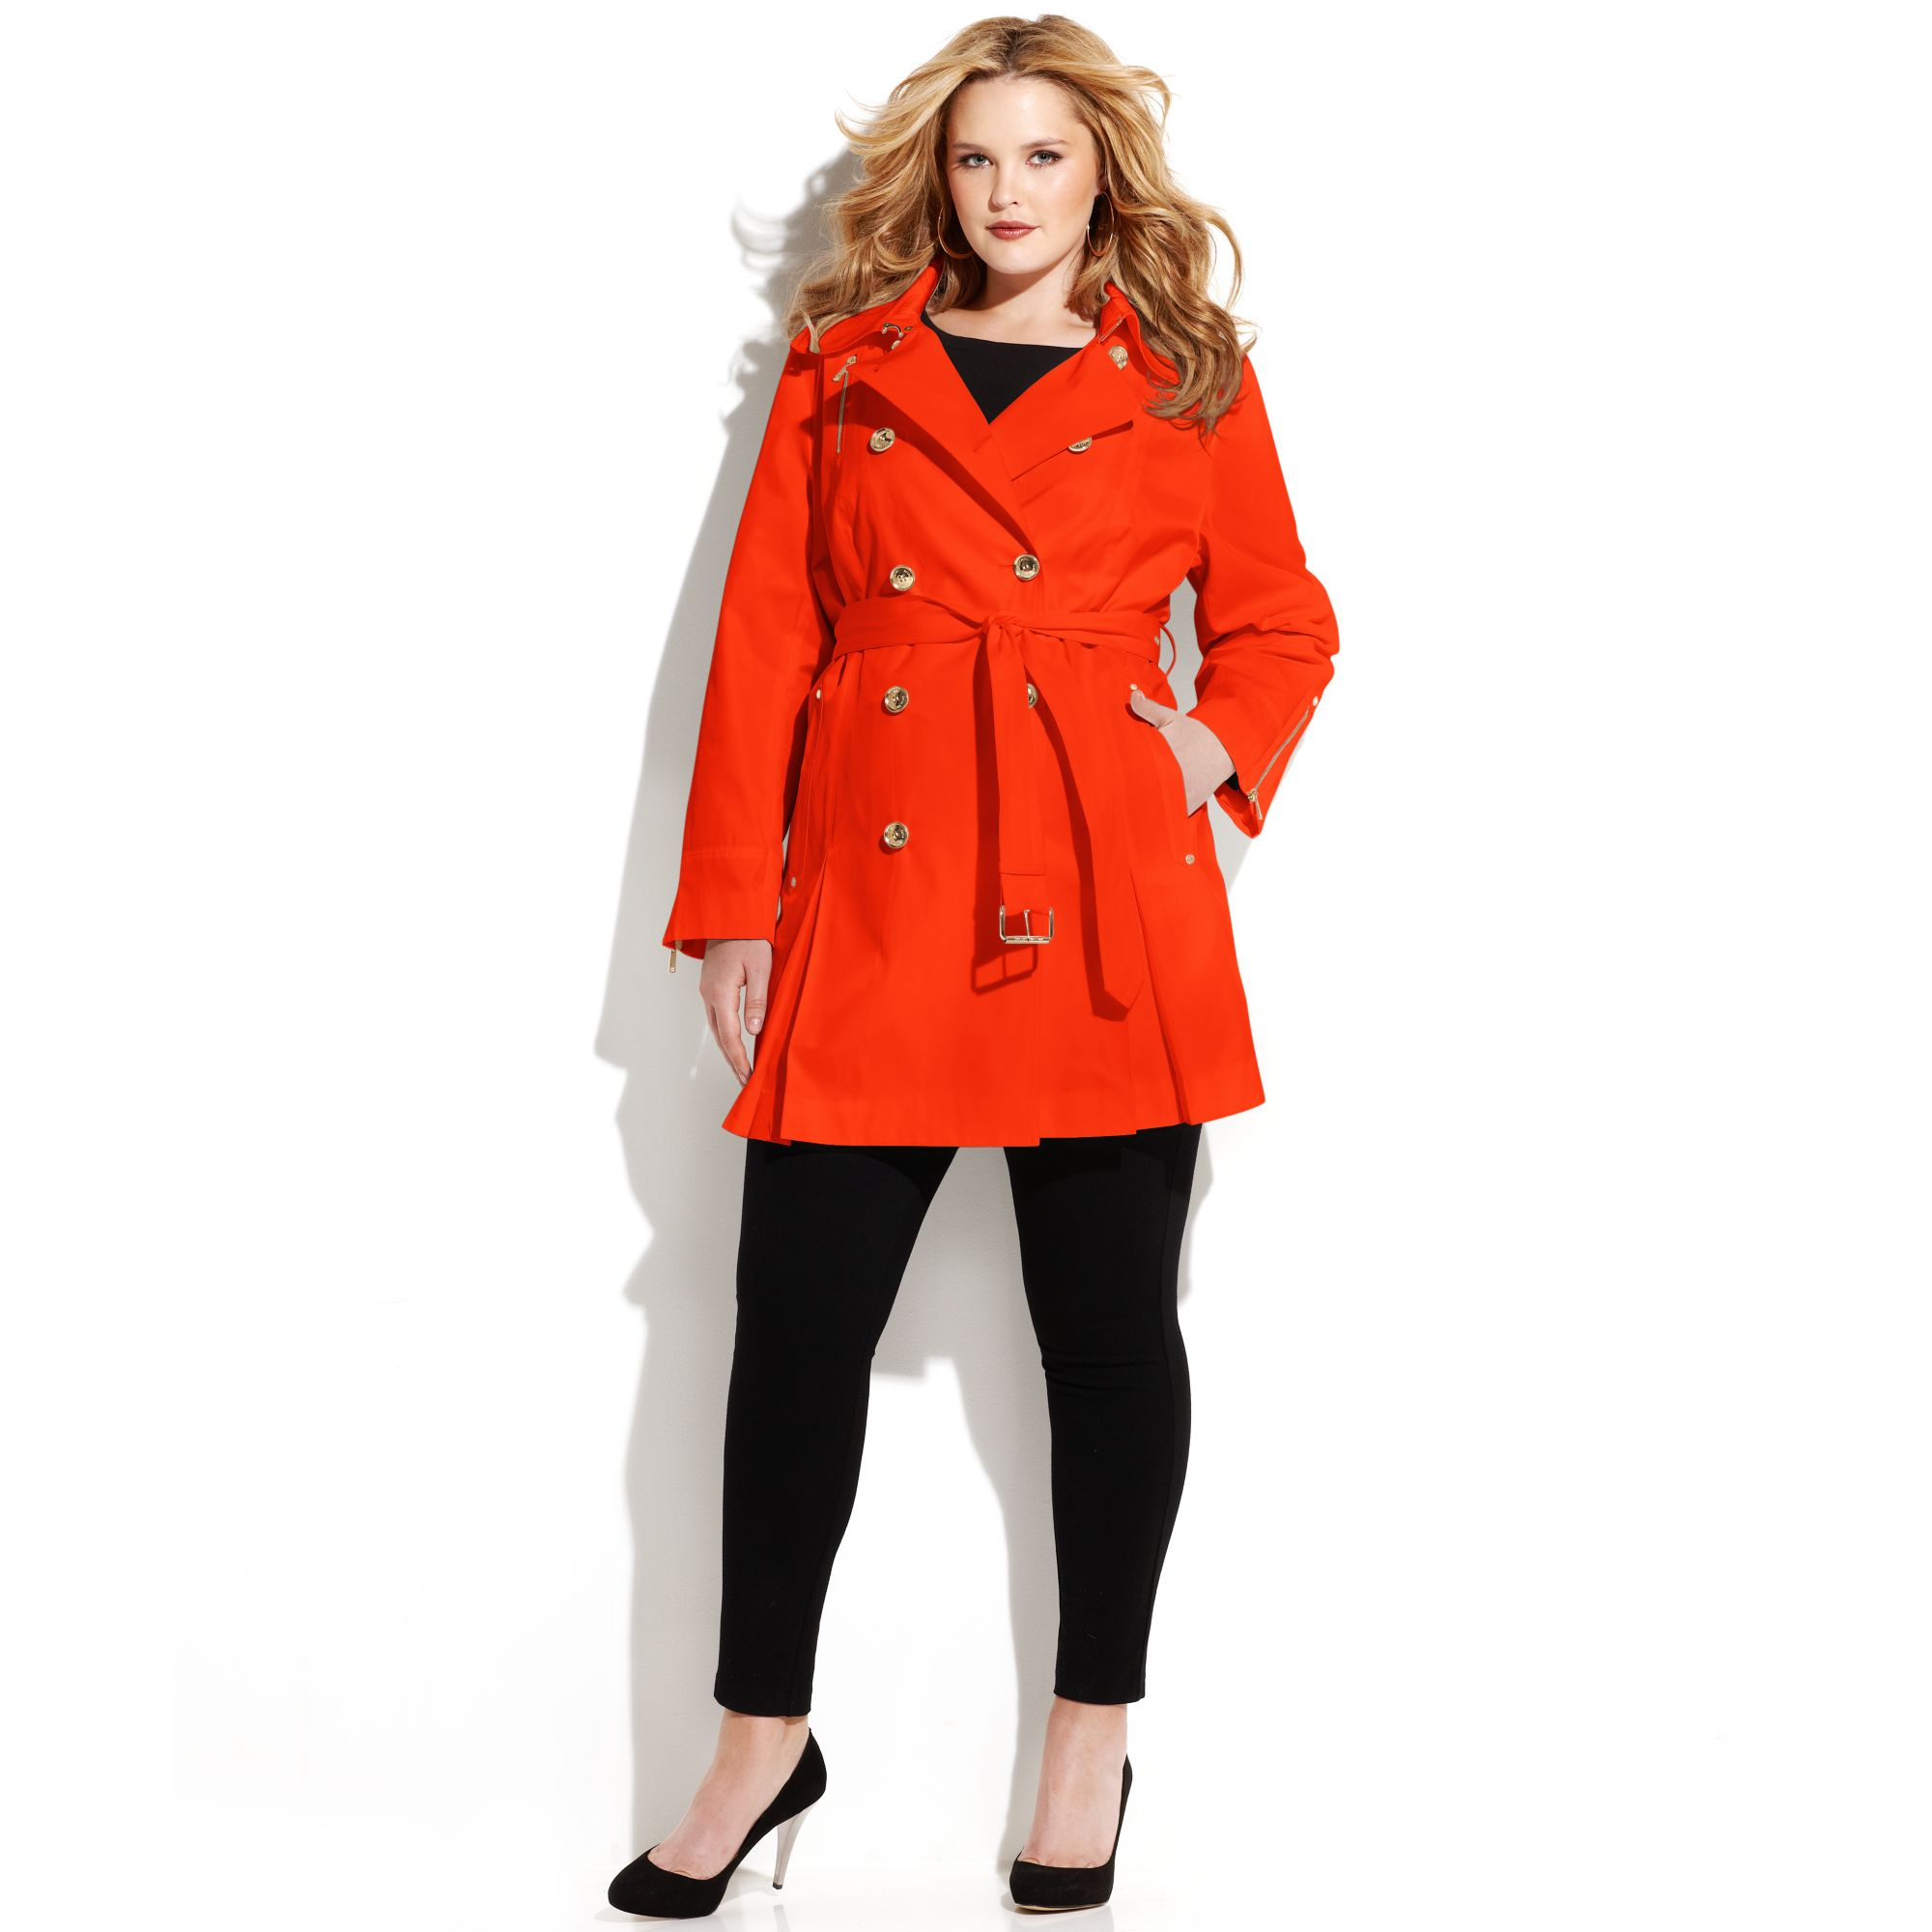 8c4ea9d663a5 Michael Kors Plus Size Double Breasted Belted Trench Coat in Red - Lyst